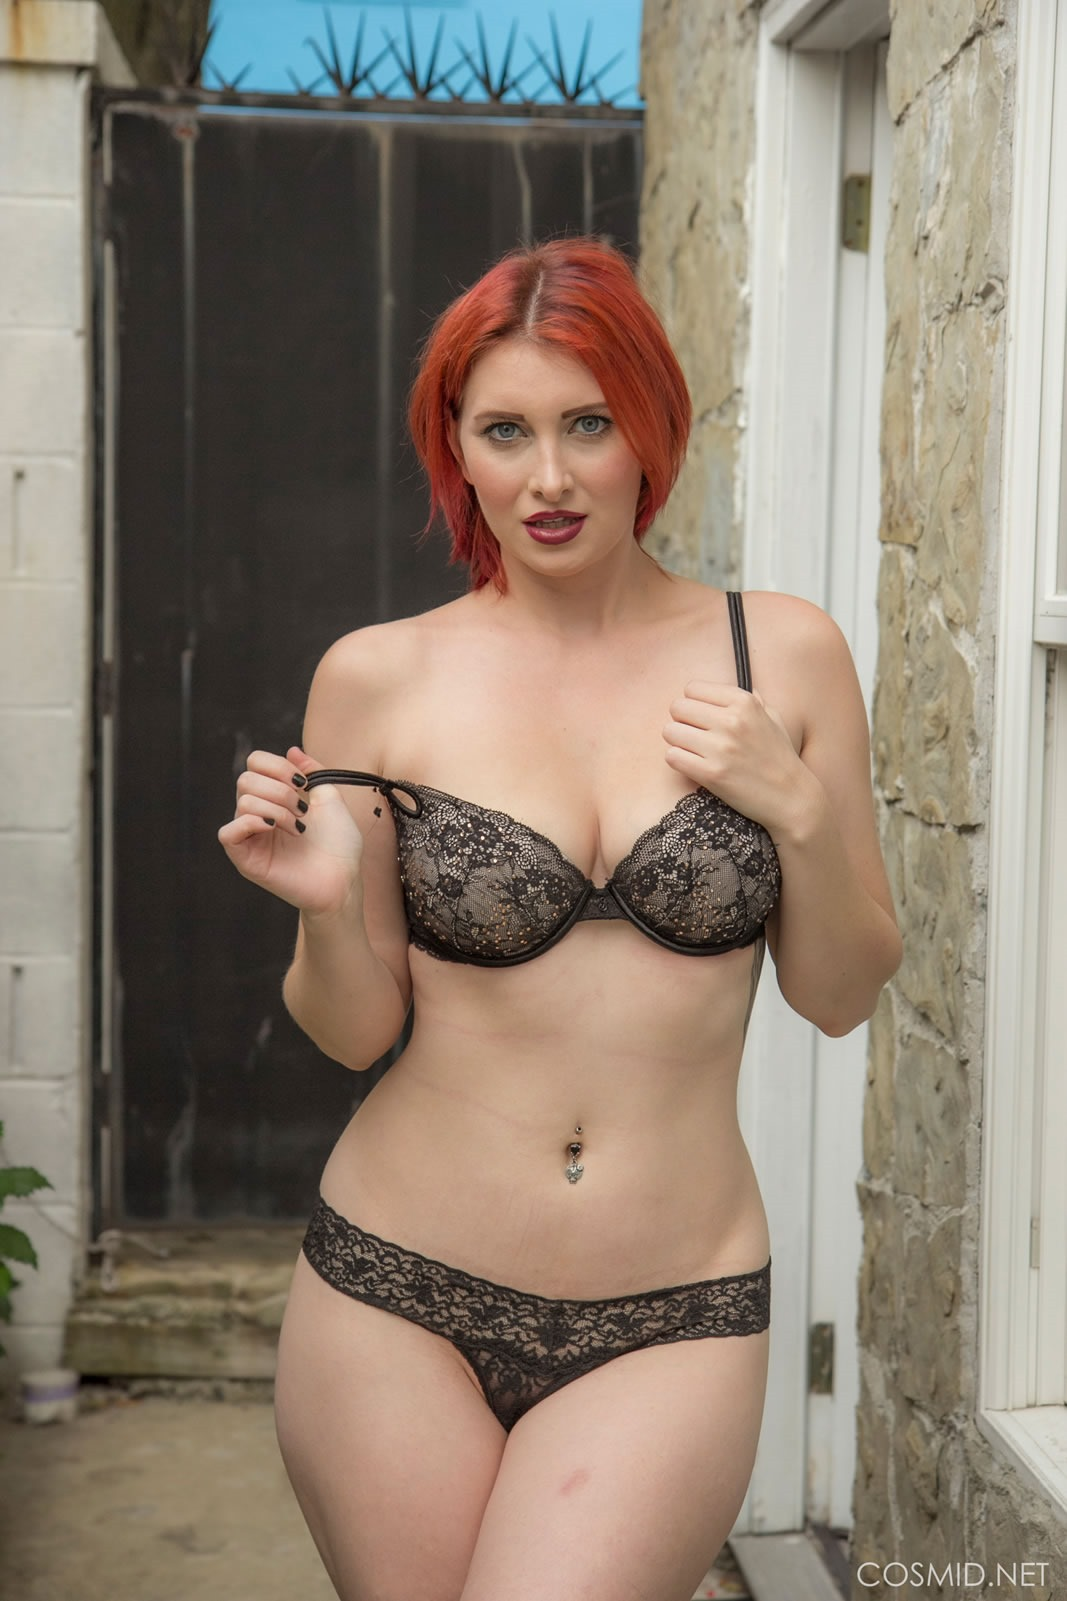 Sexmessenger stunning redhead shows off her perky tits 9